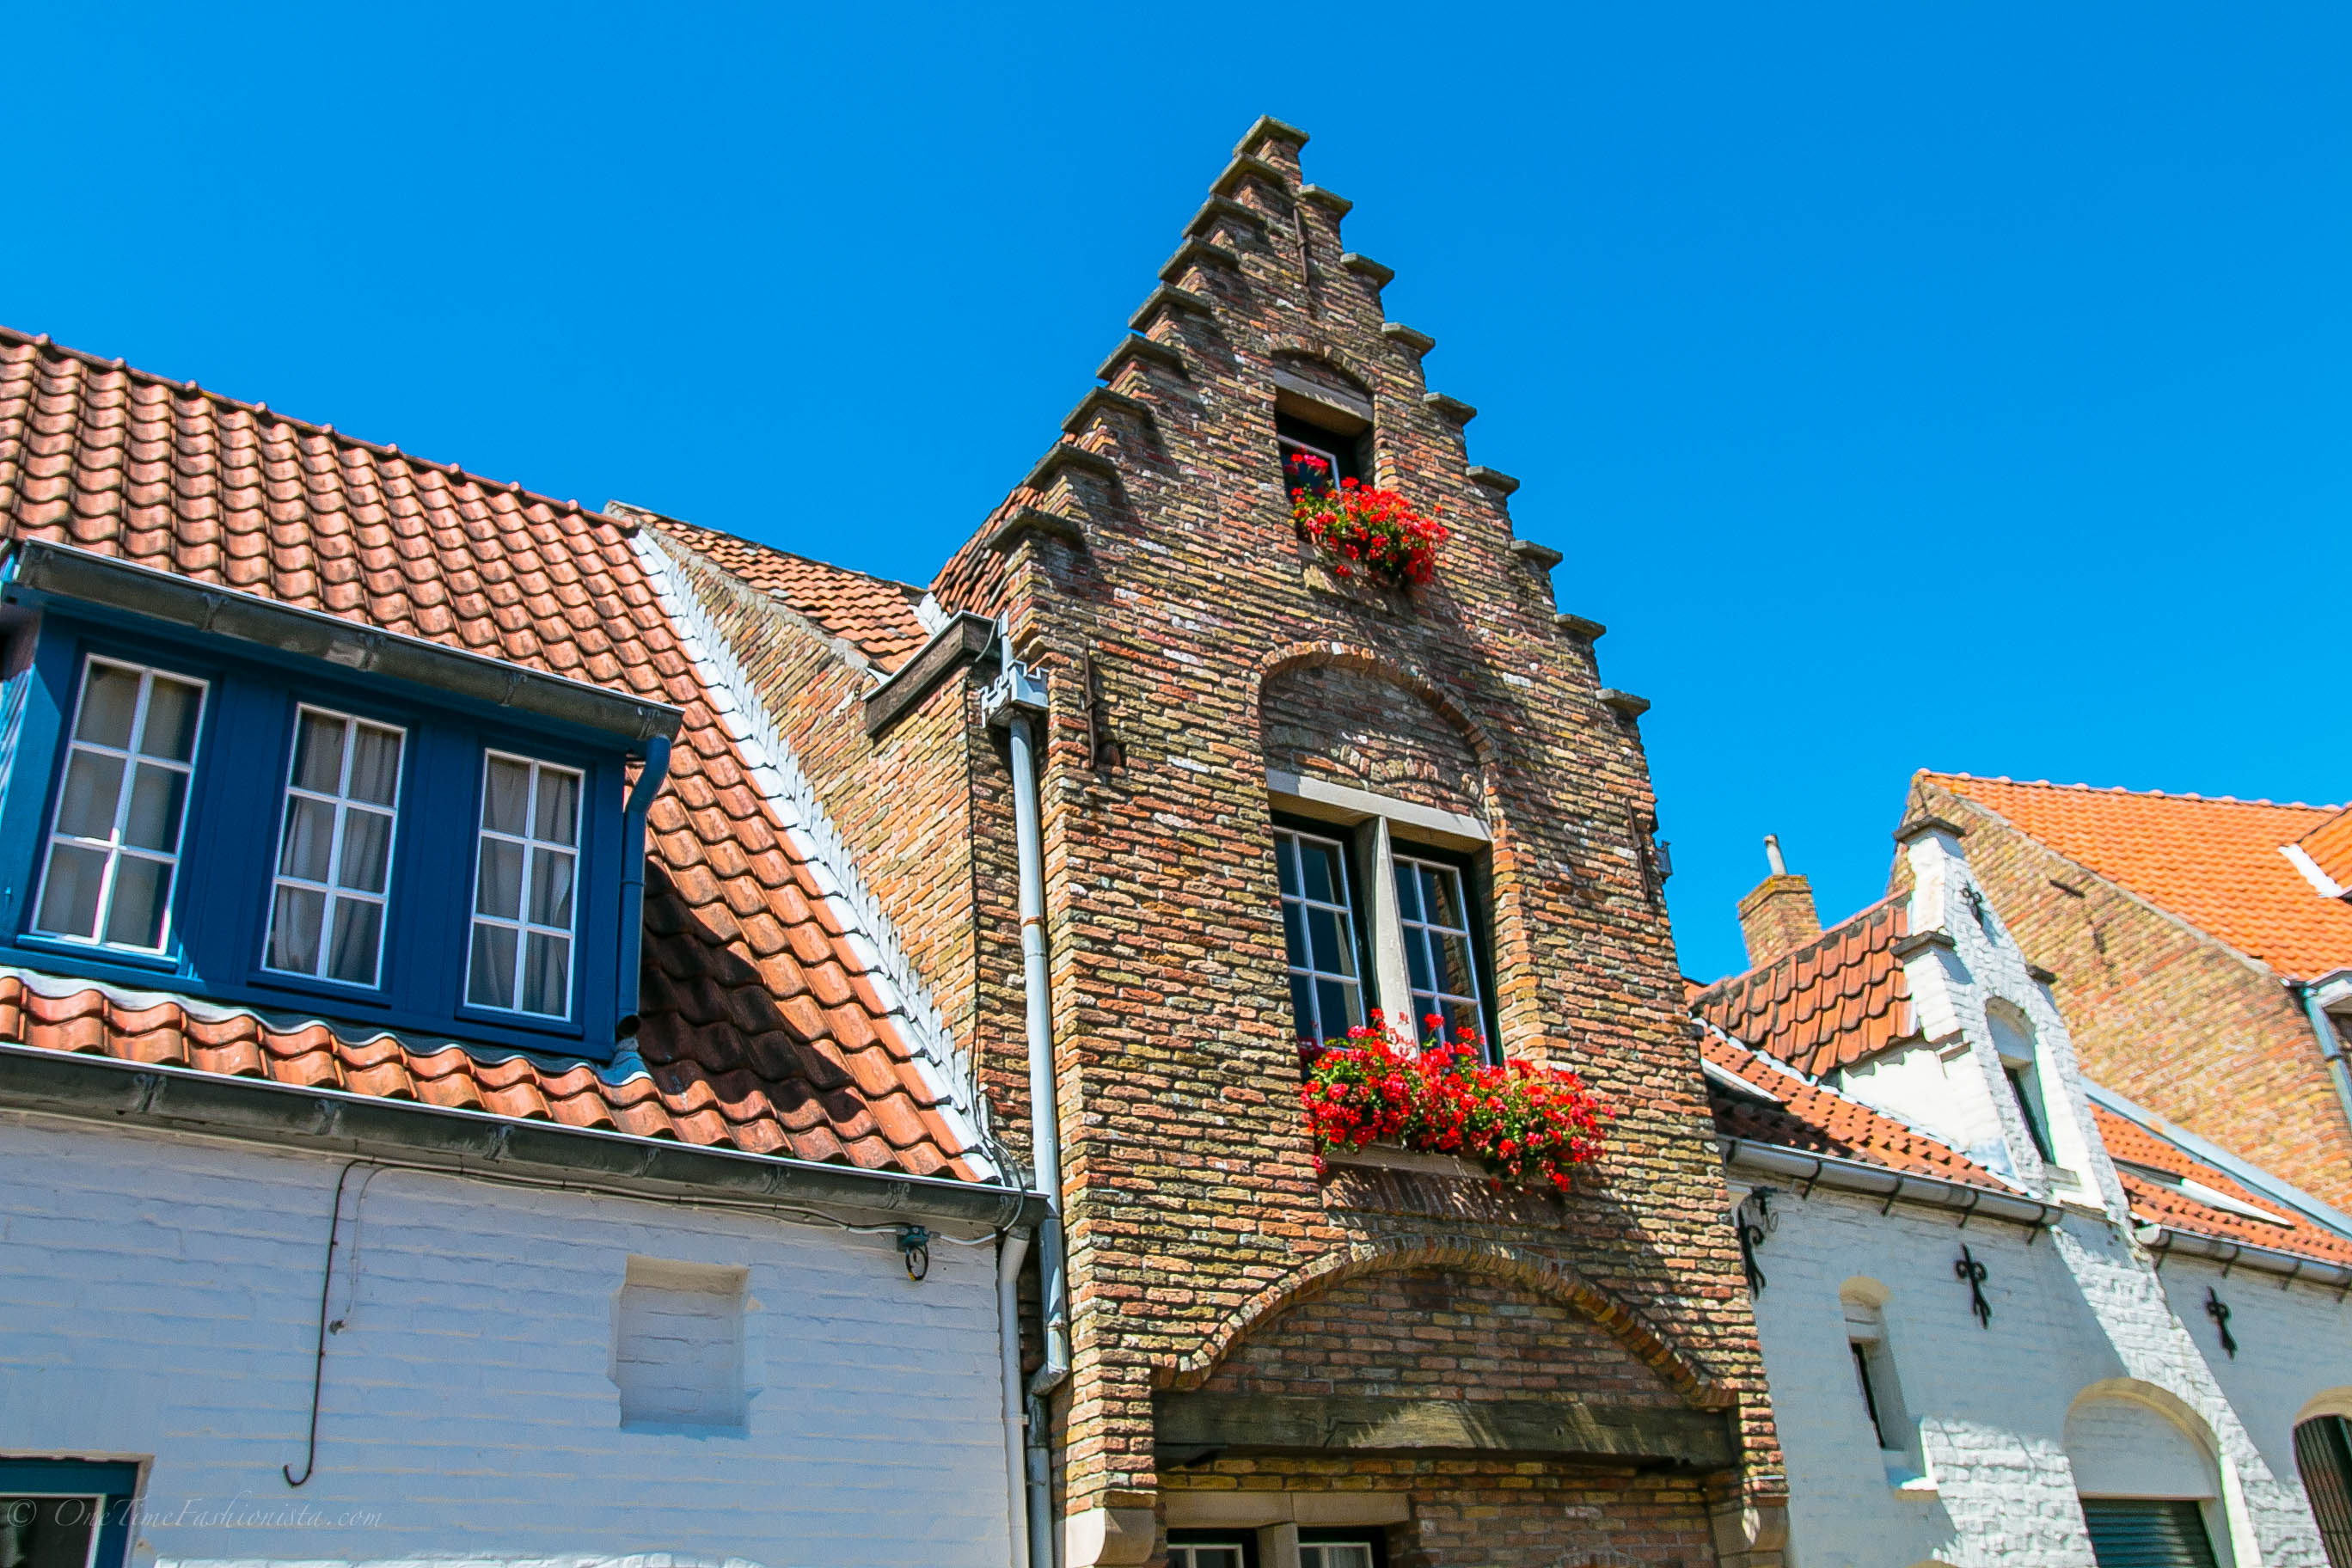 Budge in Brugge, Remedy for the Bruise: Part 2